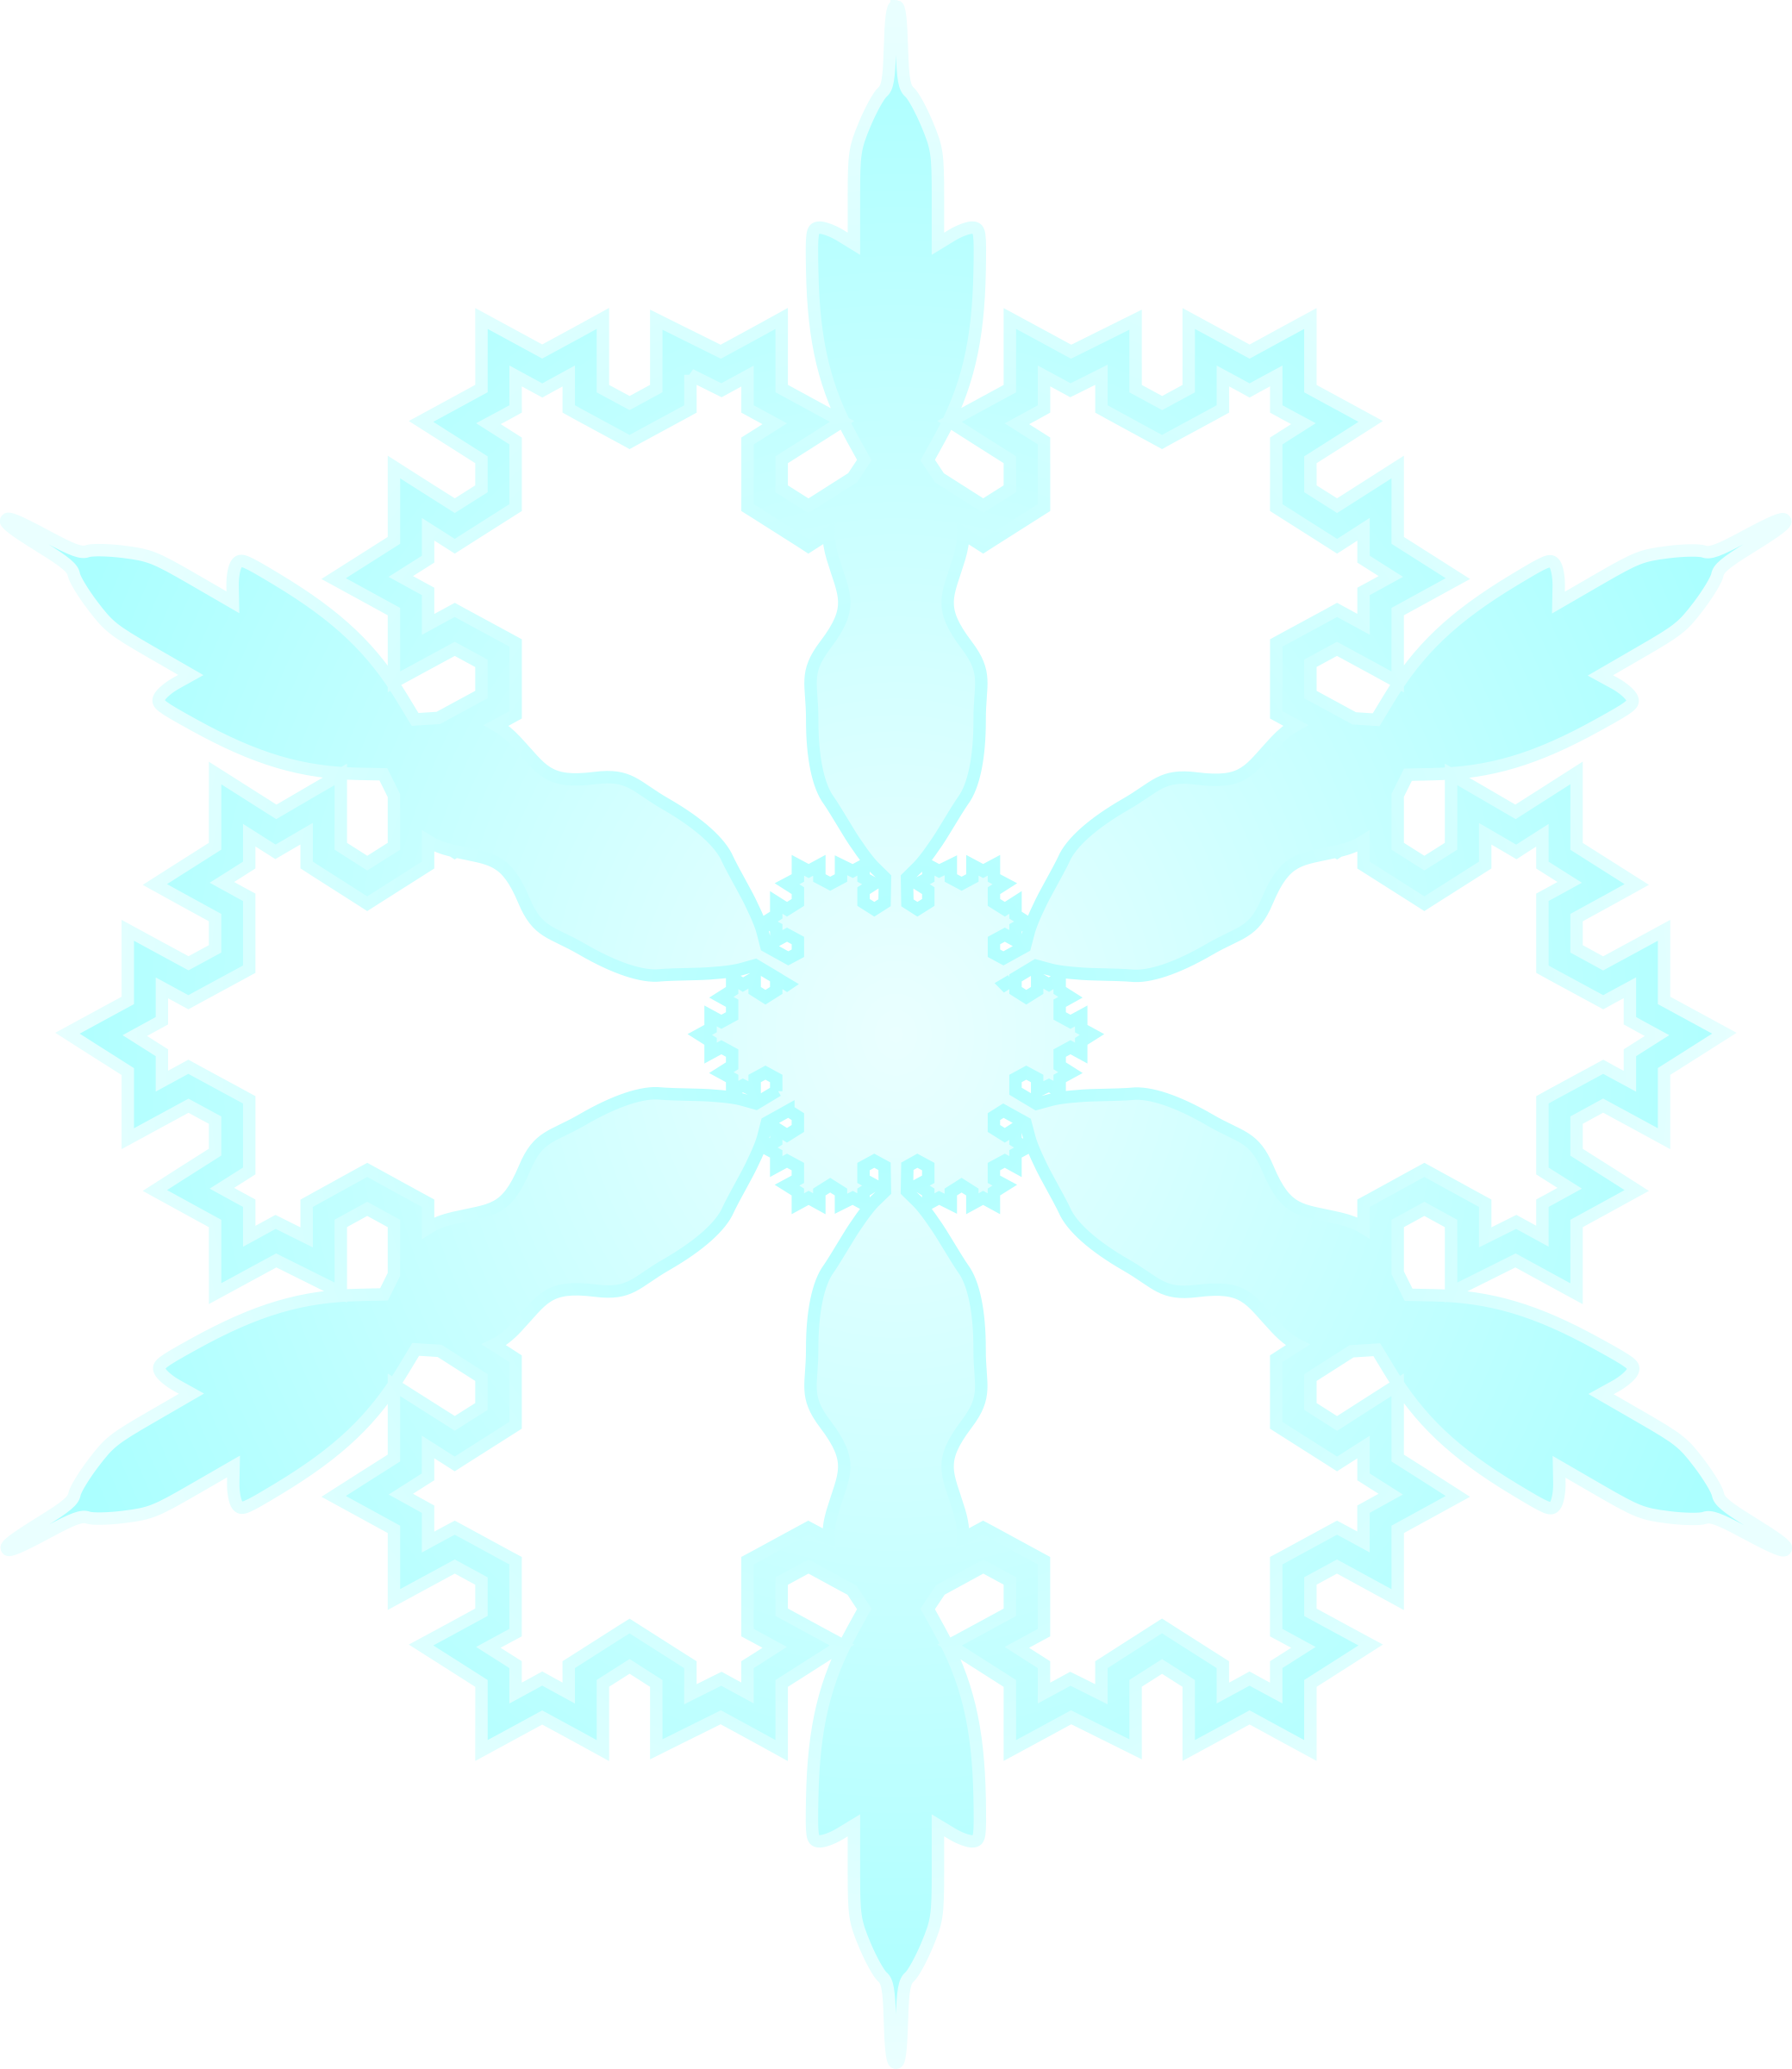 Snowflake 3 by Arvin61r58